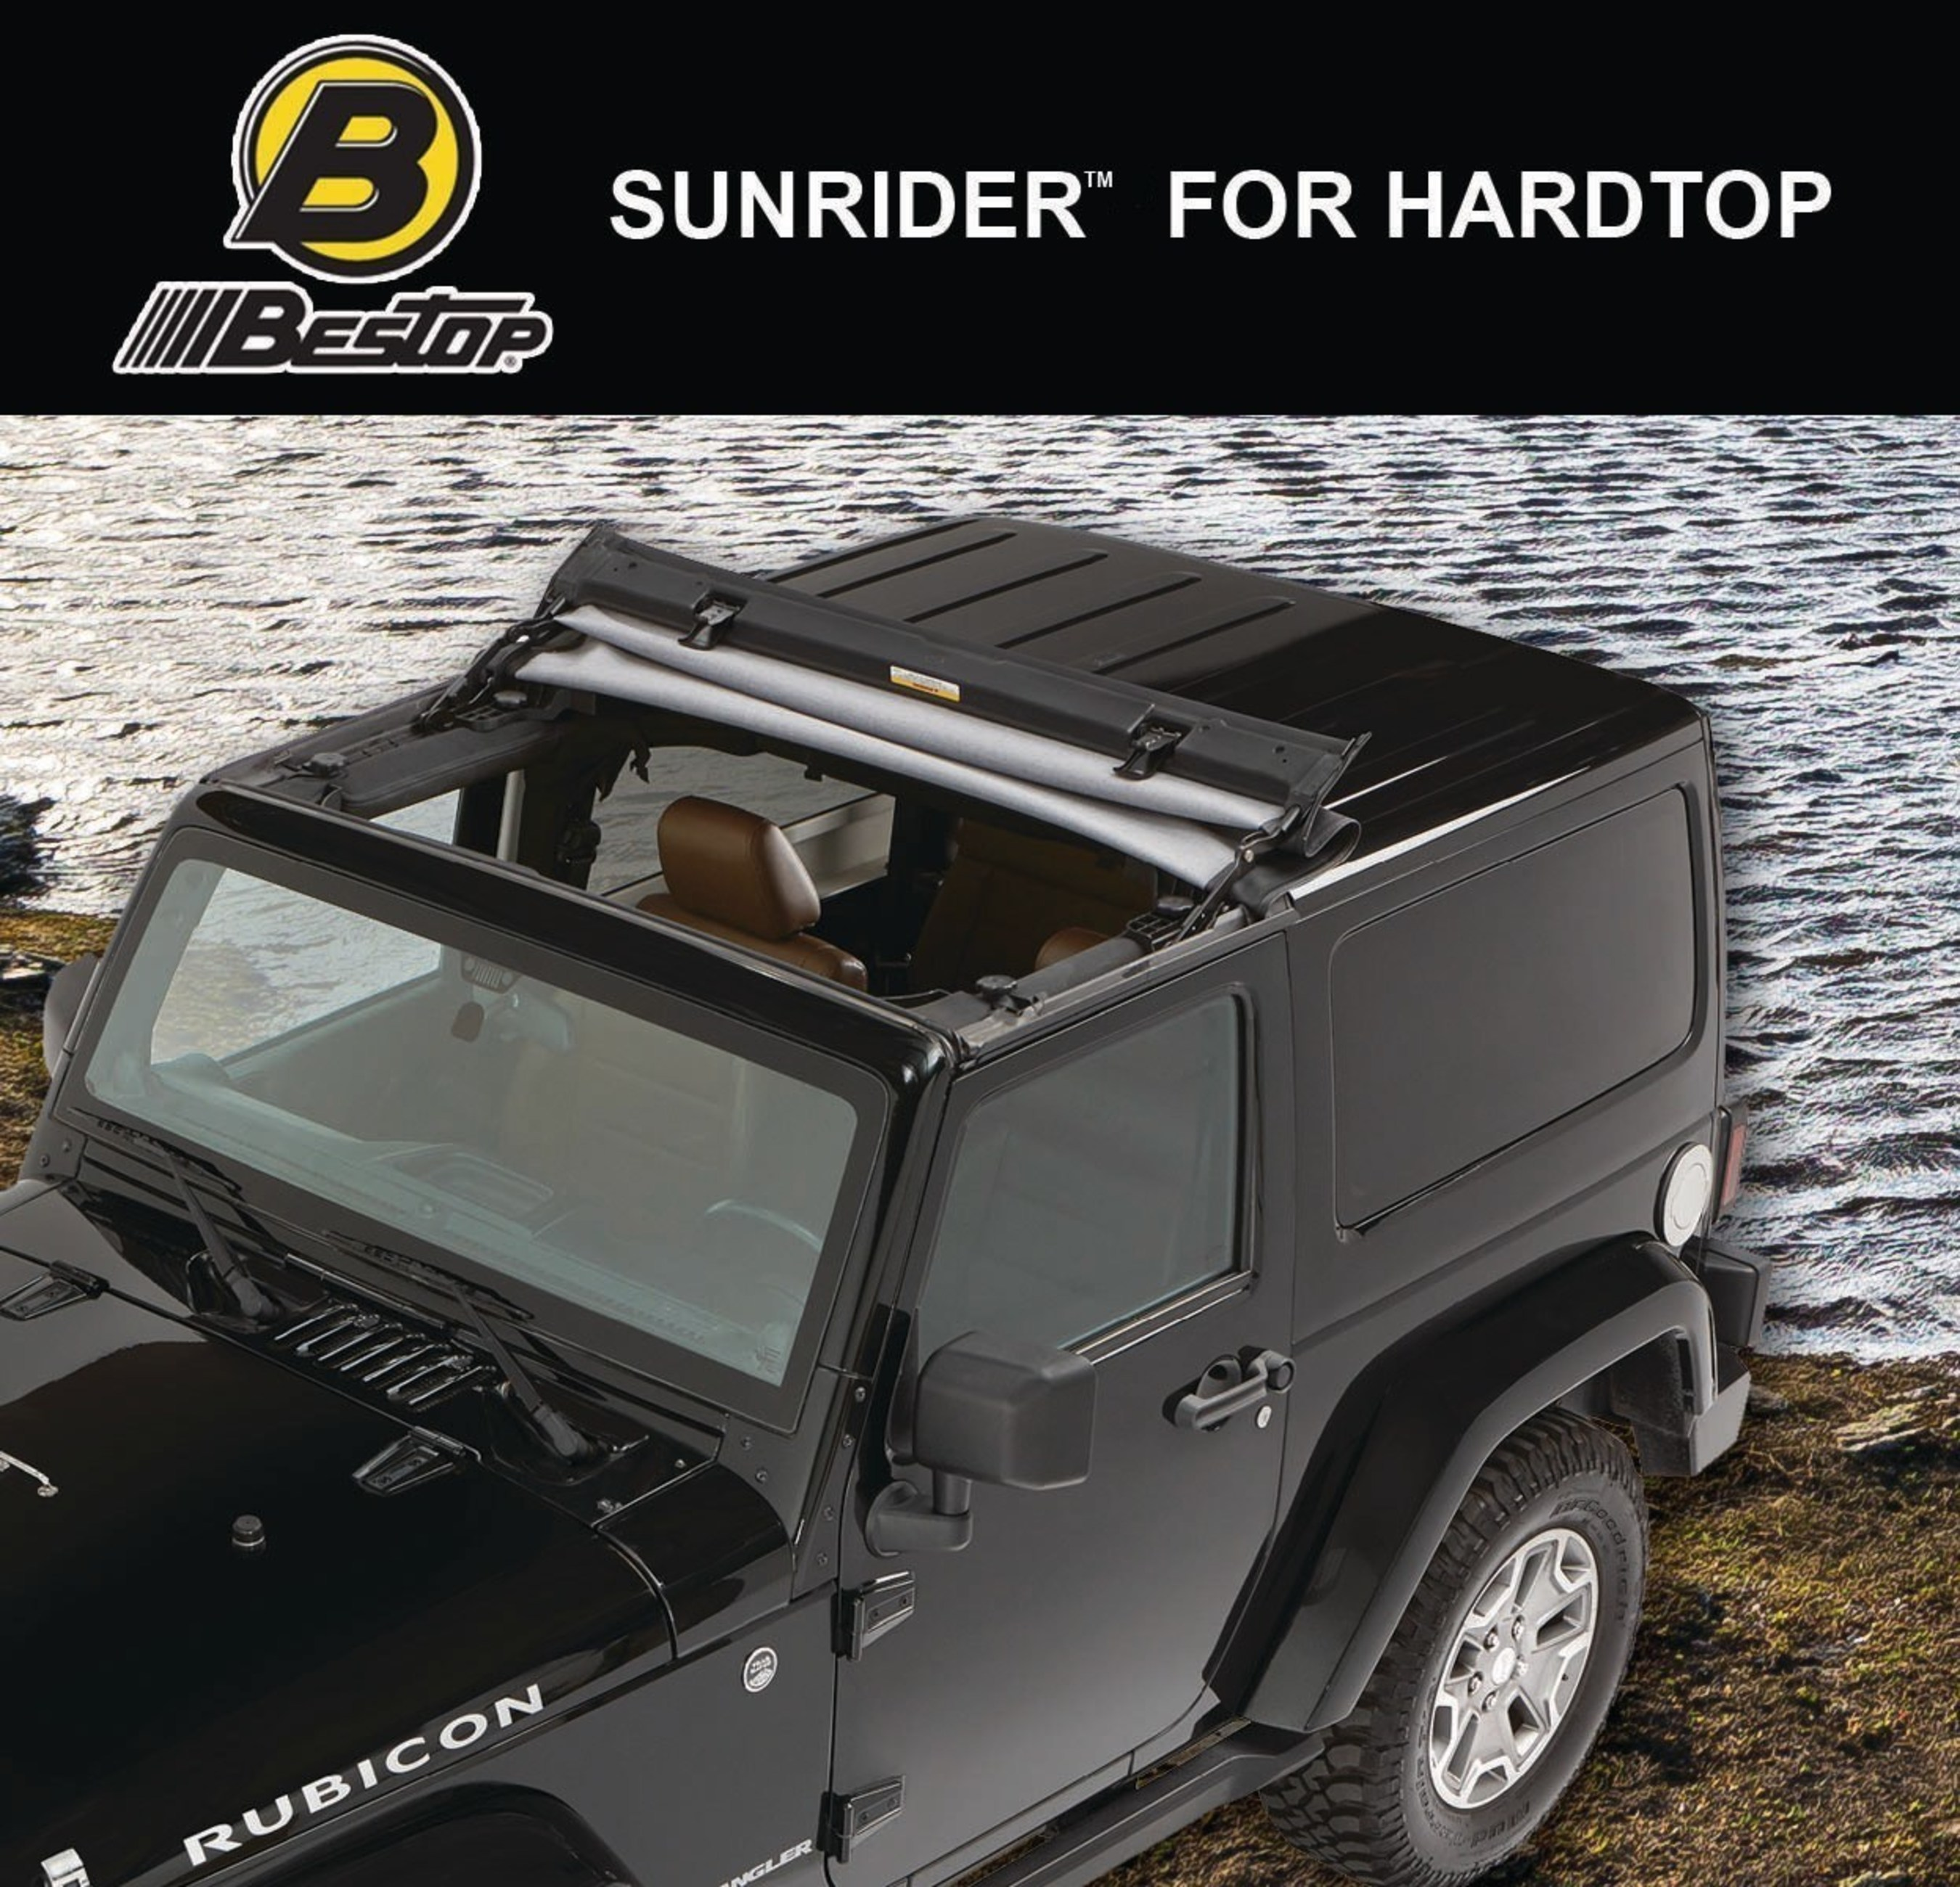 Bestop Invites Jeep Wrangler Jk Owners To Open Up Breathe With New Accessories Sunrider For Hardtop